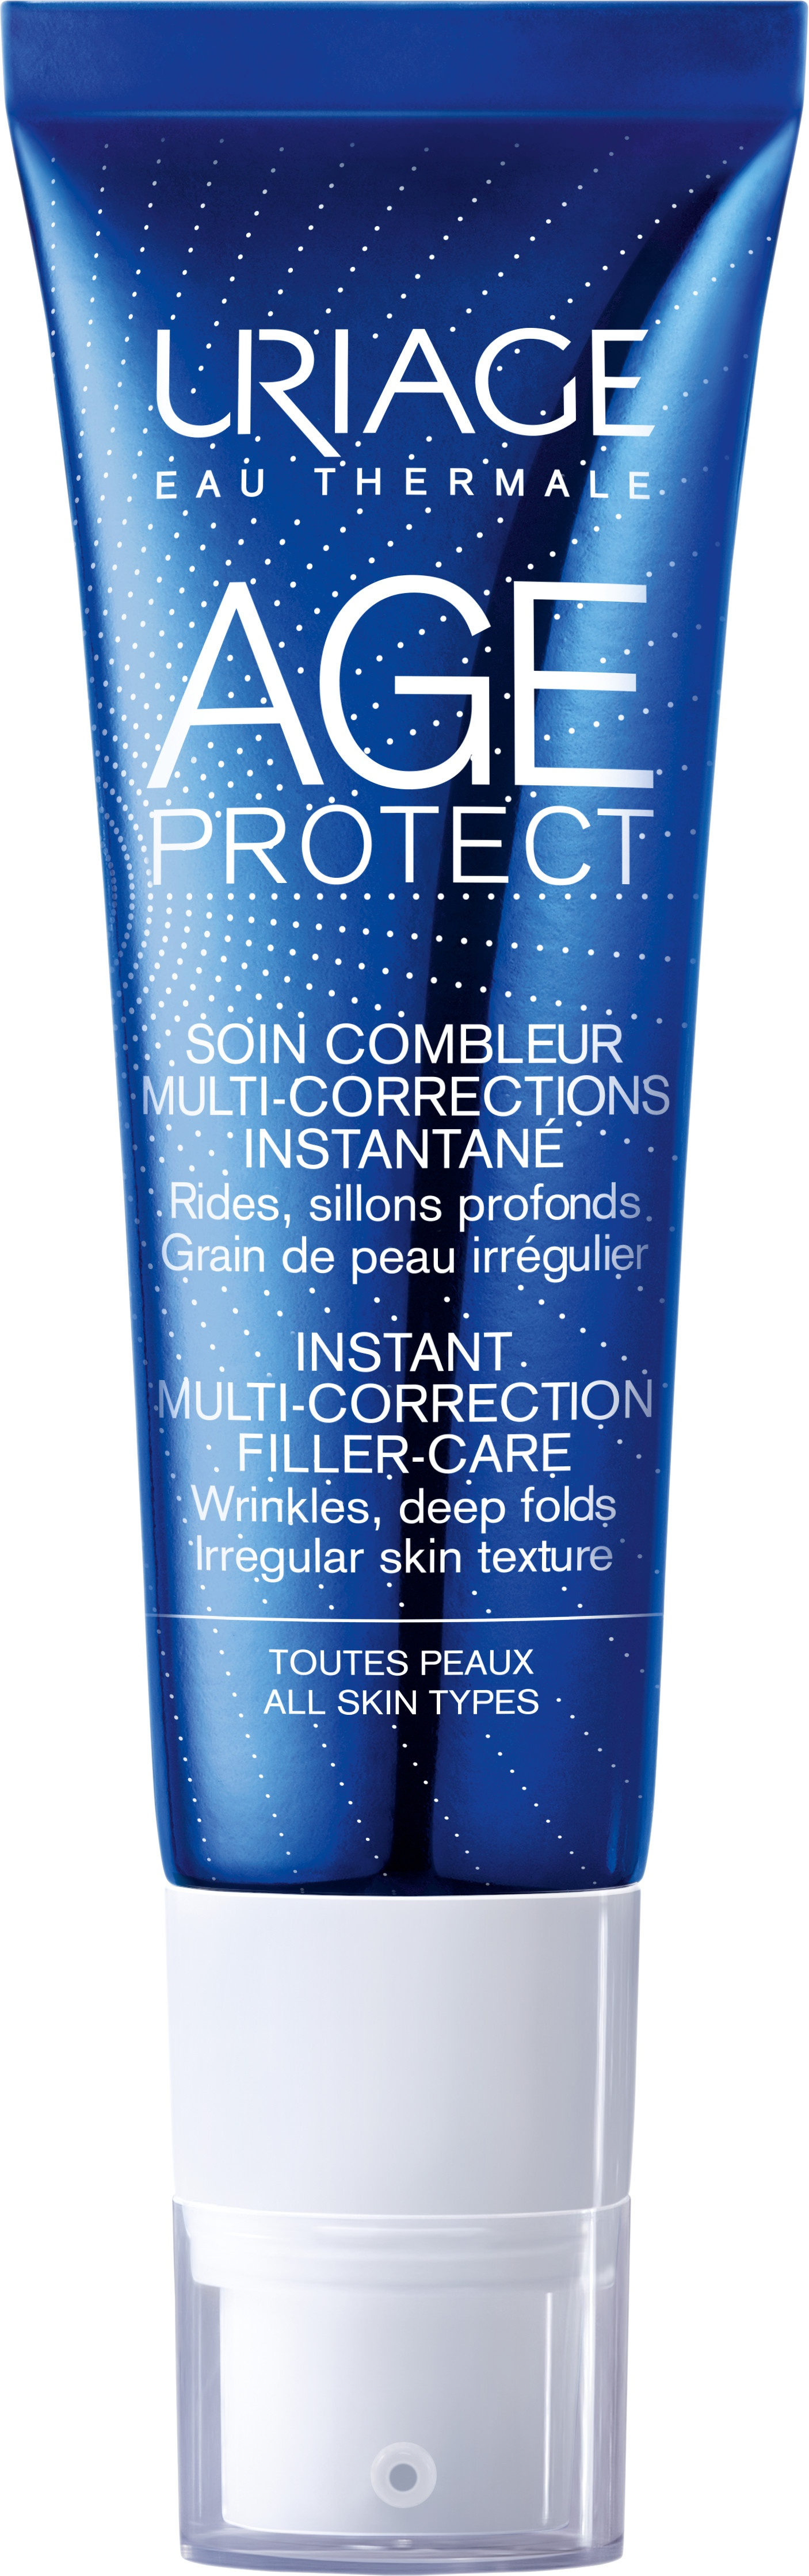 Uriage Age Protect Instant Multi-Correction Filler-Care